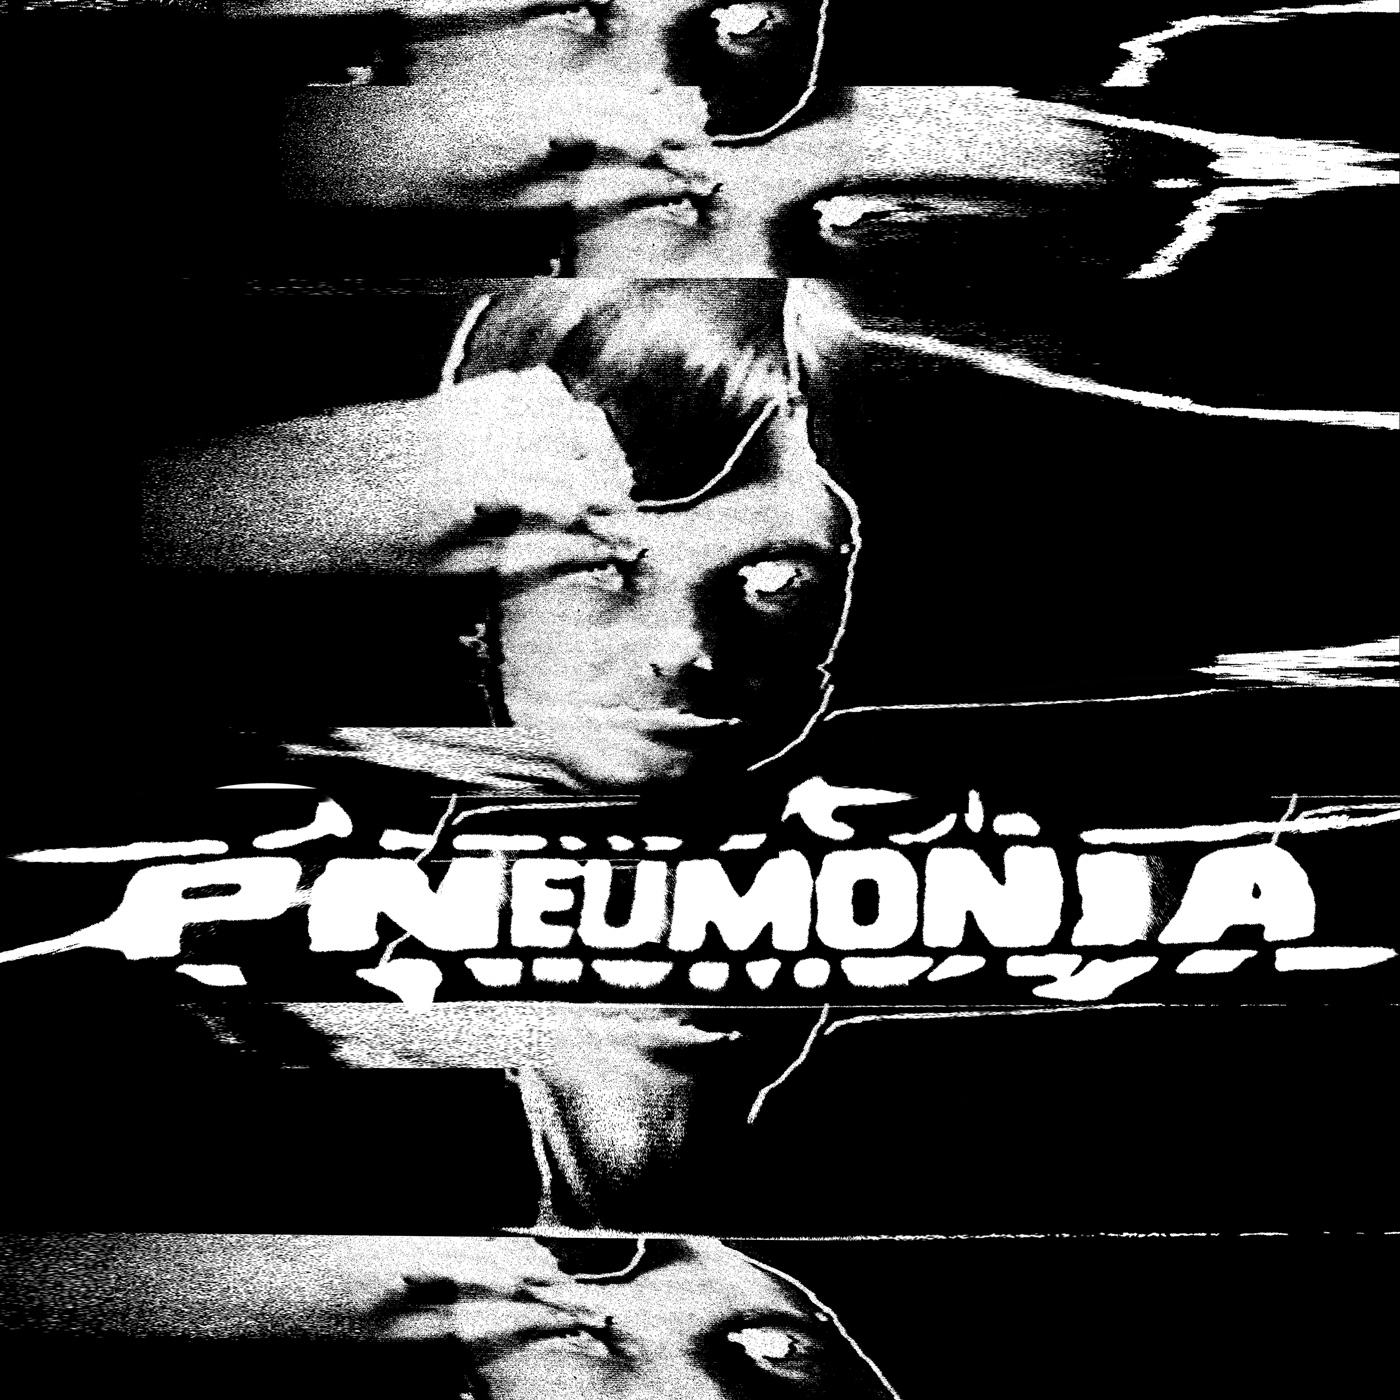 New track 'Pneumonia' (Produced by Evian Christ)